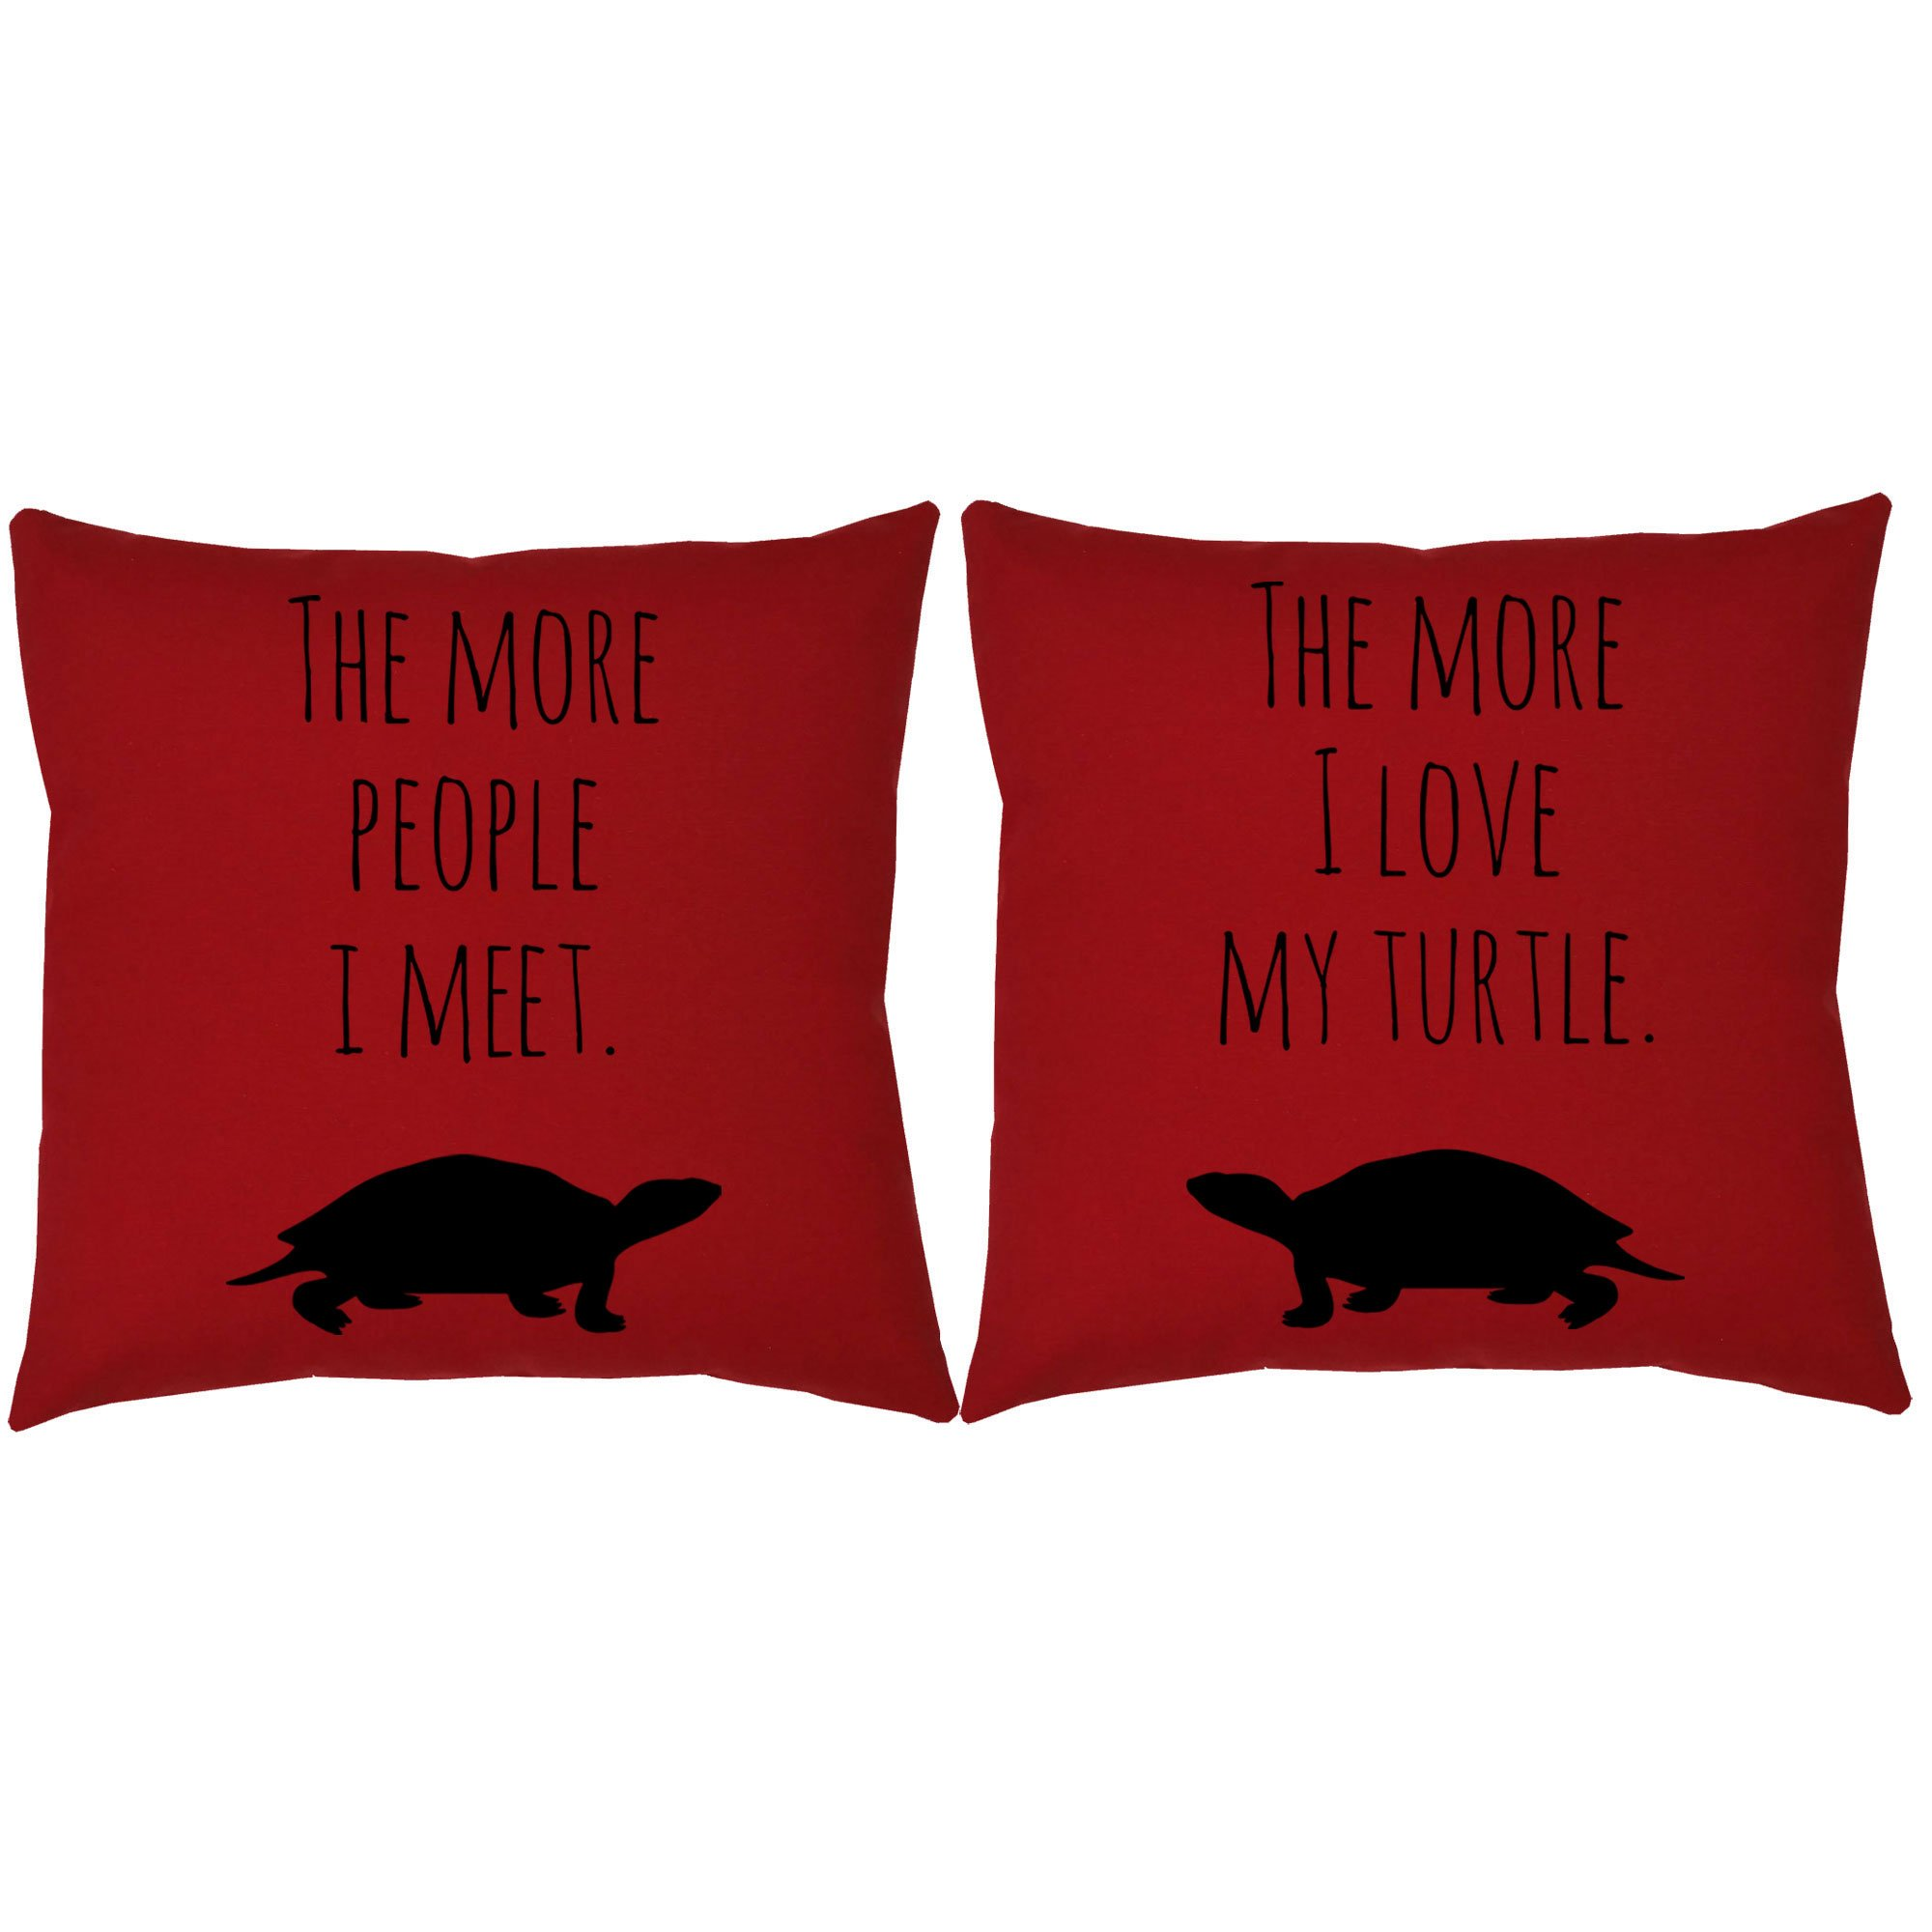 Set of 2 RoomCraft I Love My Turtle Throw Pillows 20x20 Square Red Cotton Cushions by RoomCraft (Image #1)